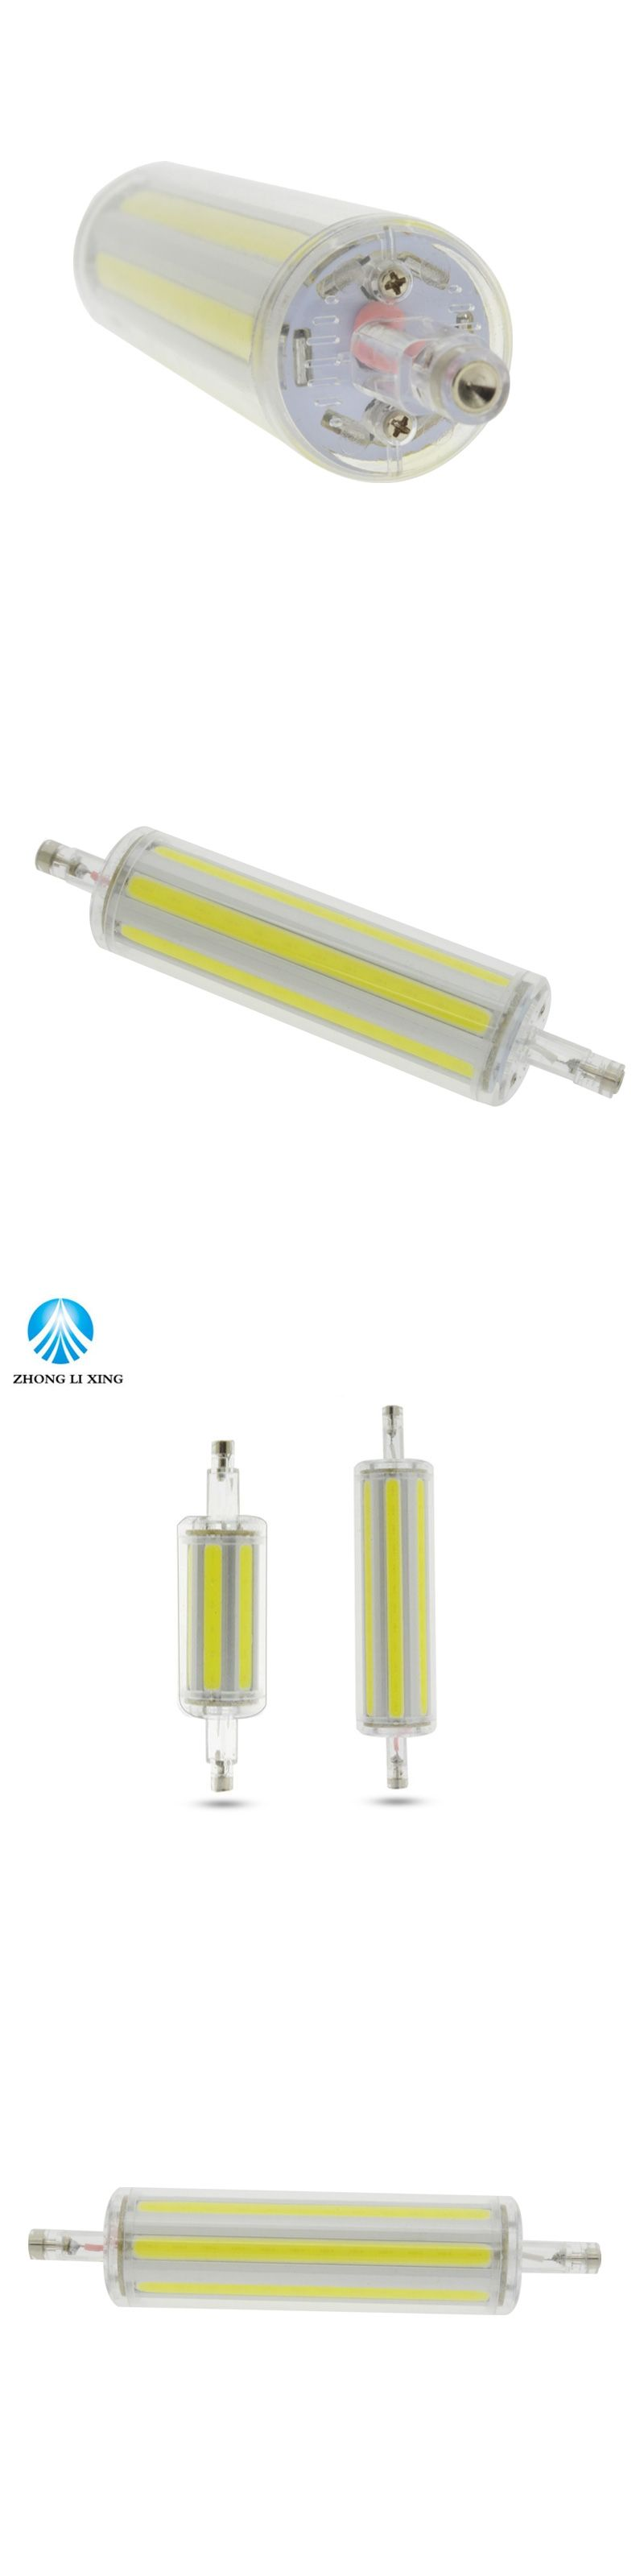 R7s Led Dimmable 30w 15w 118mm 78mm R7s Led Dimmable Instead Of 150w 300w Halogen